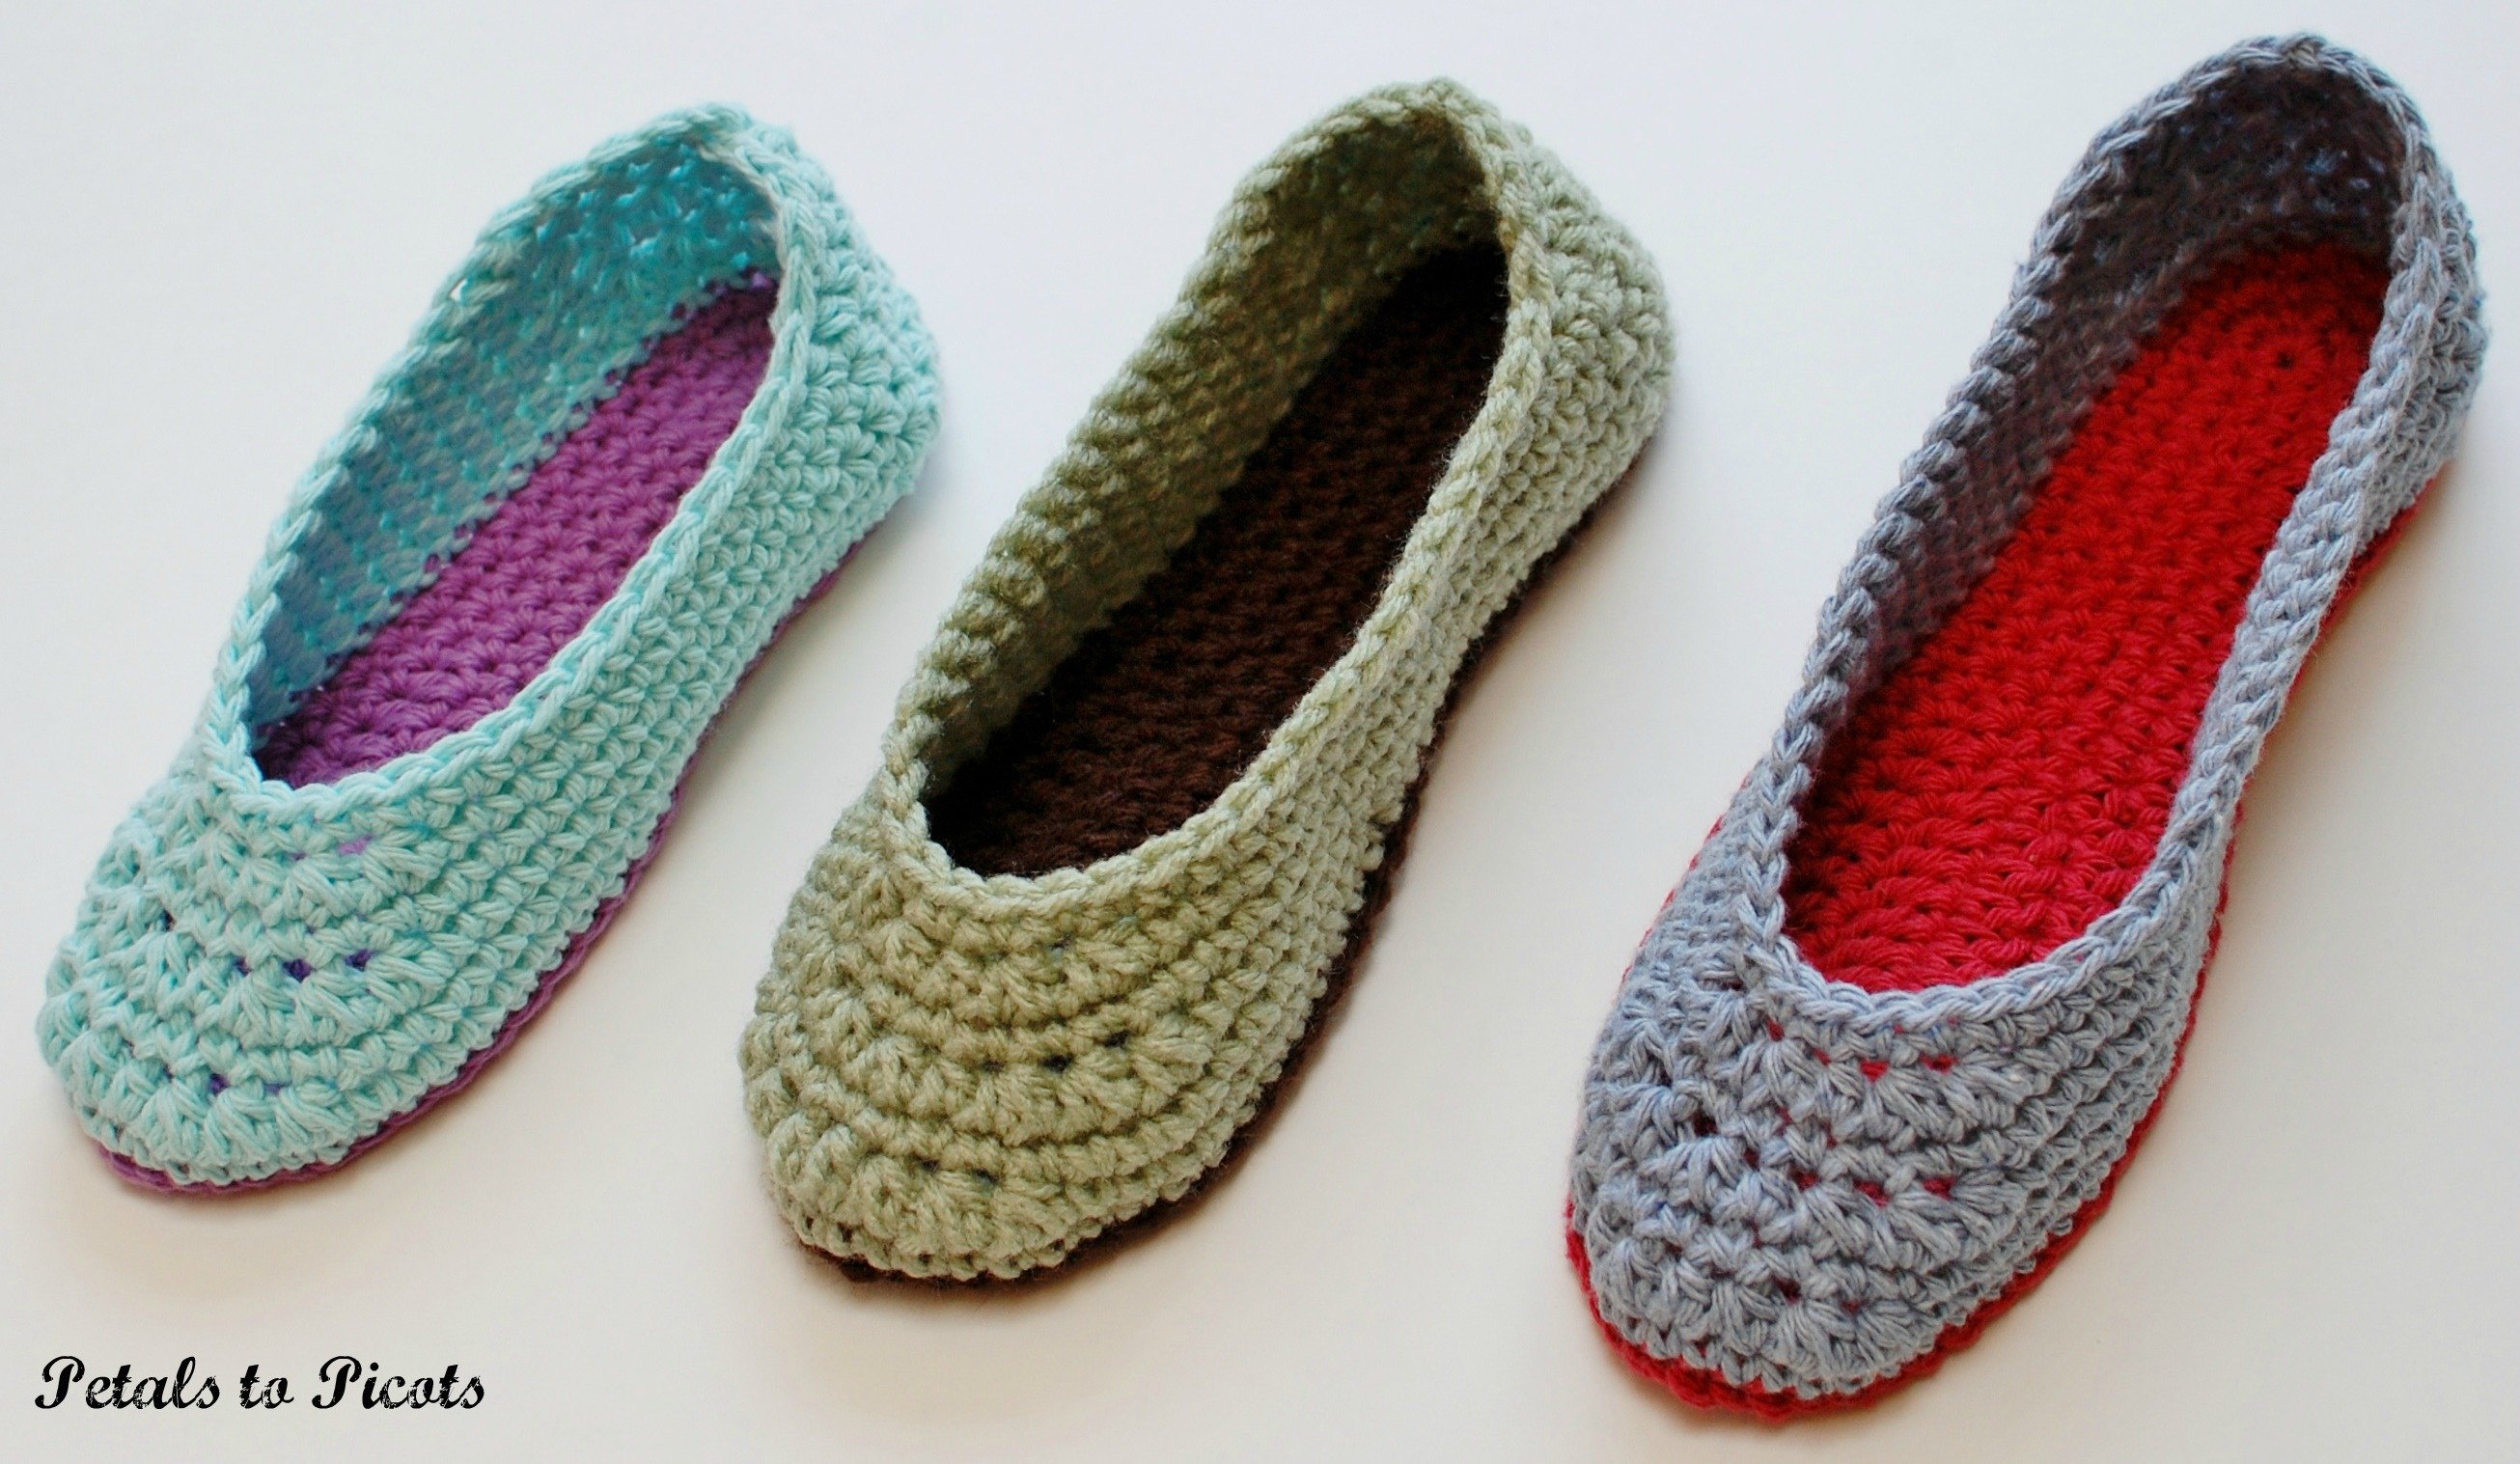 Crochet Patterns Slippers : Crochet Pattern - Ladies Slippers (Womens Sizes 4/5, 6/7, 8/9, 10/11 ...